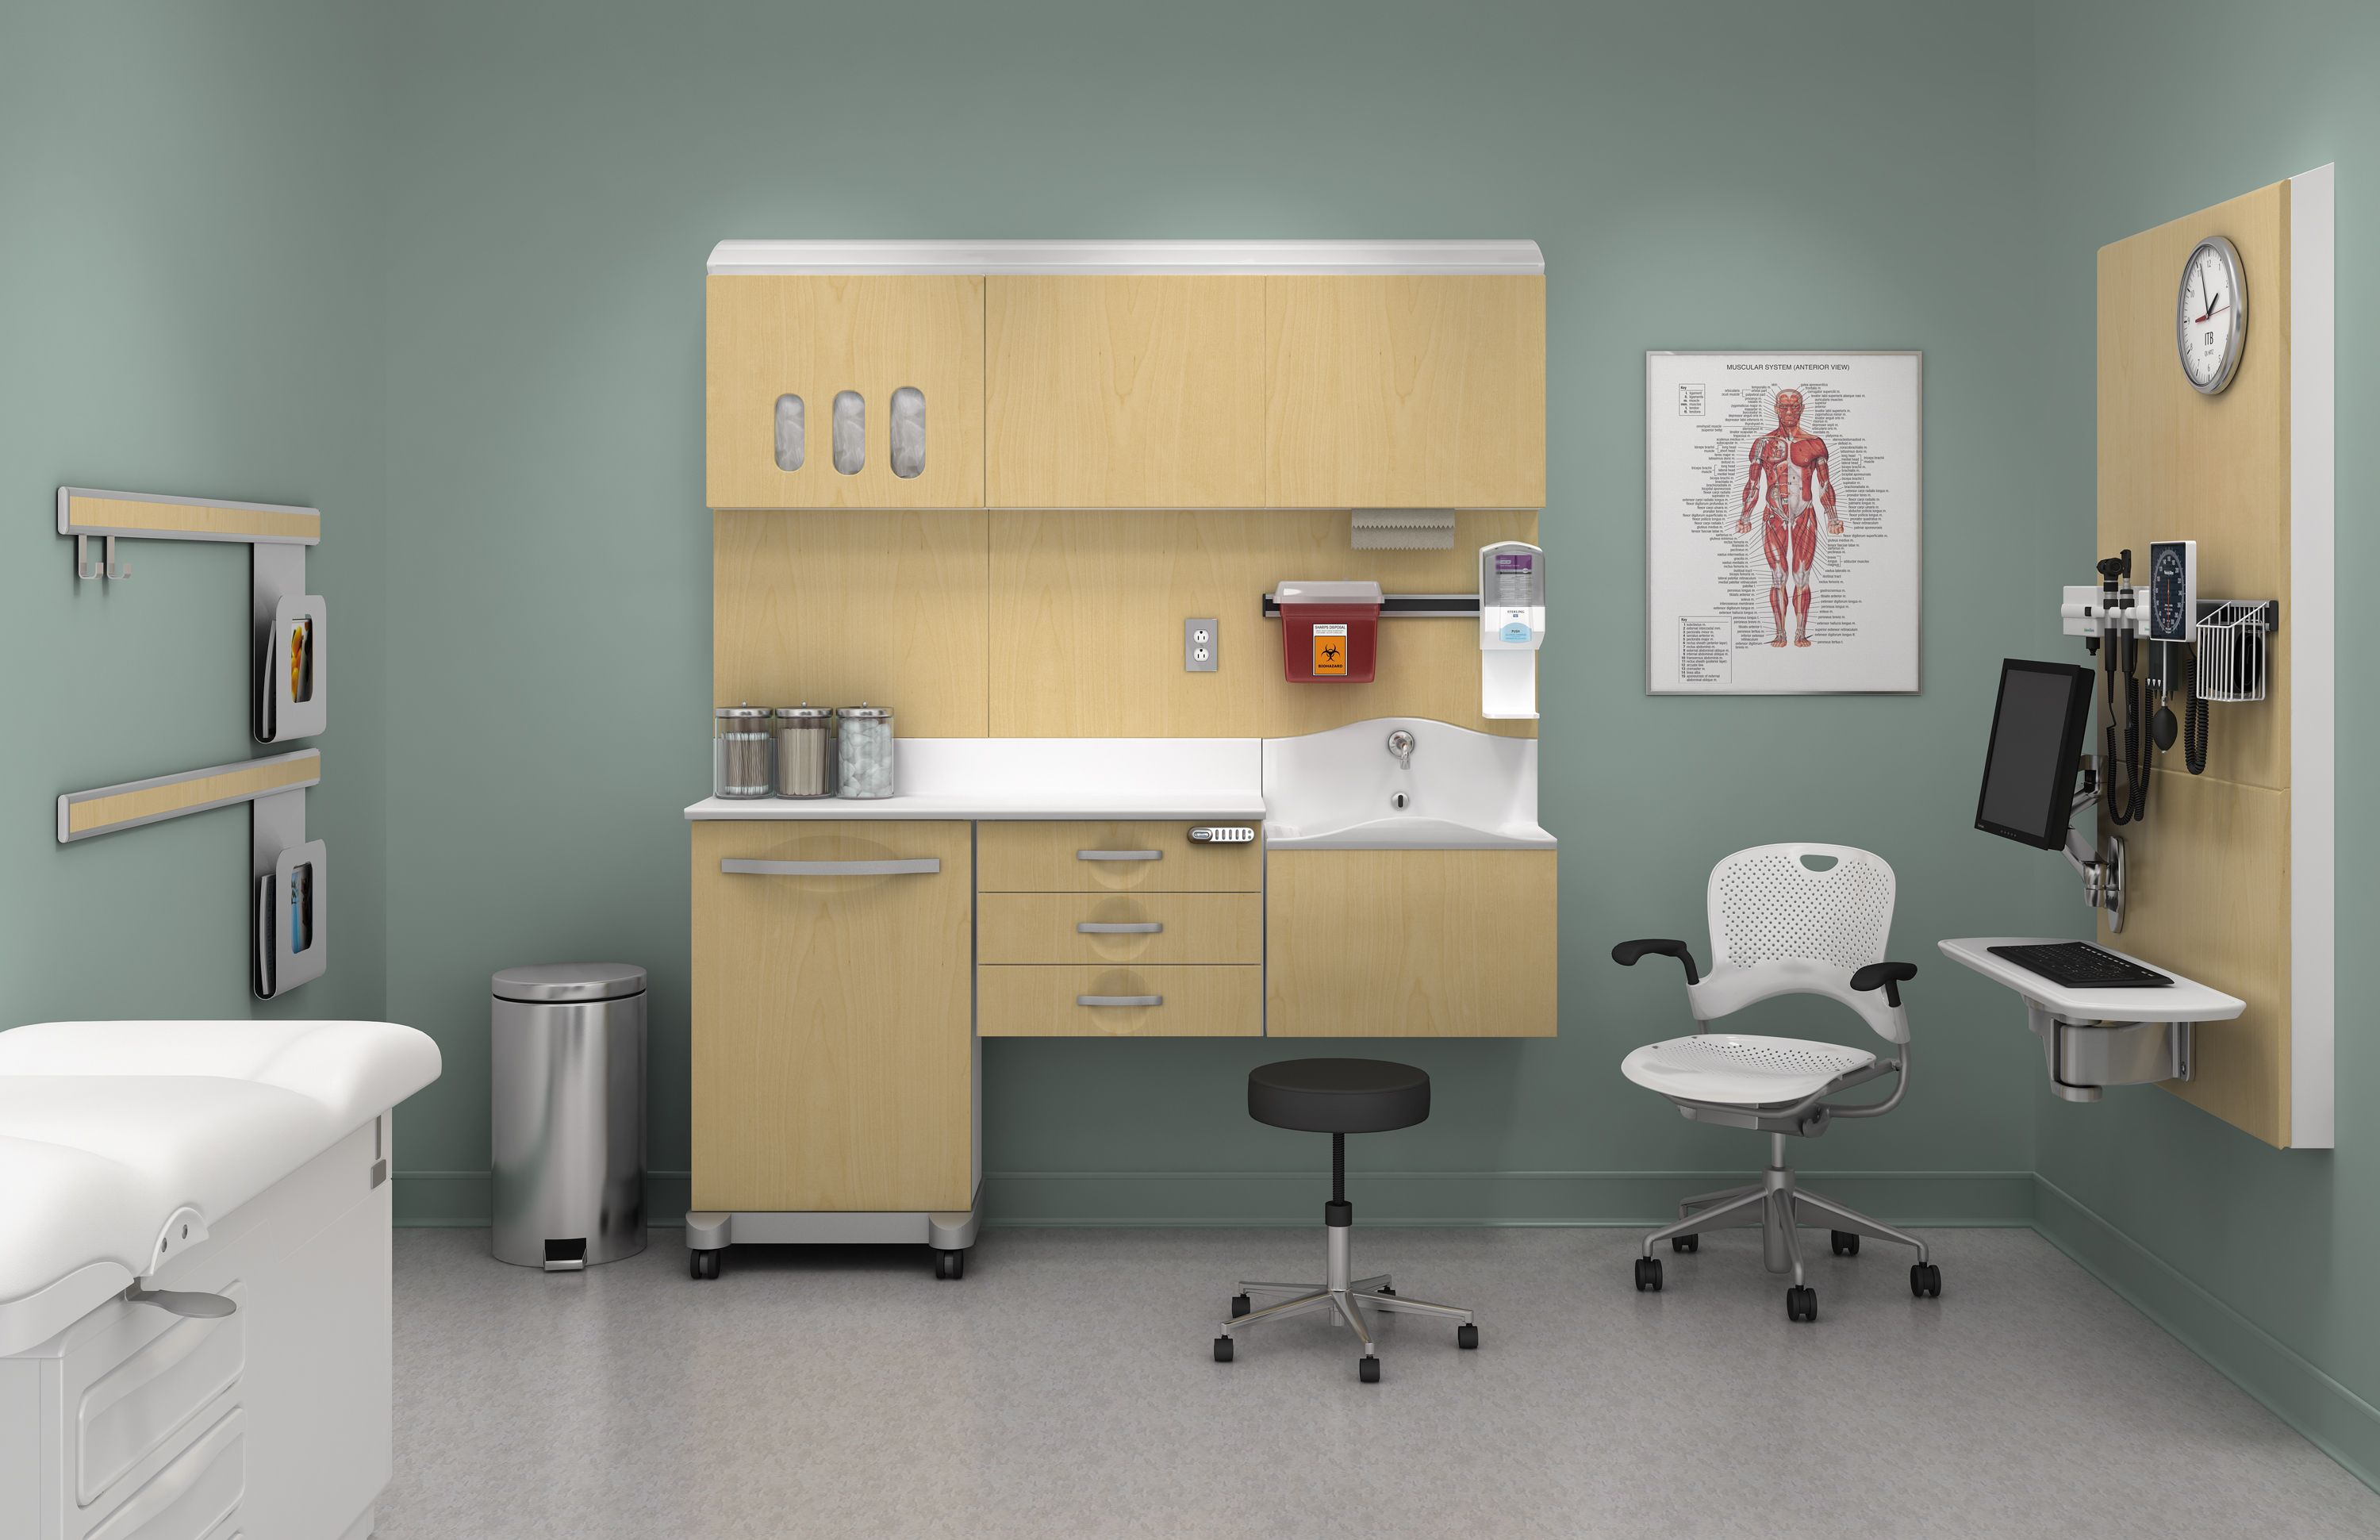 Prime Compass Exam Room Spaces Medical Office Interior Download Free Architecture Designs Embacsunscenecom